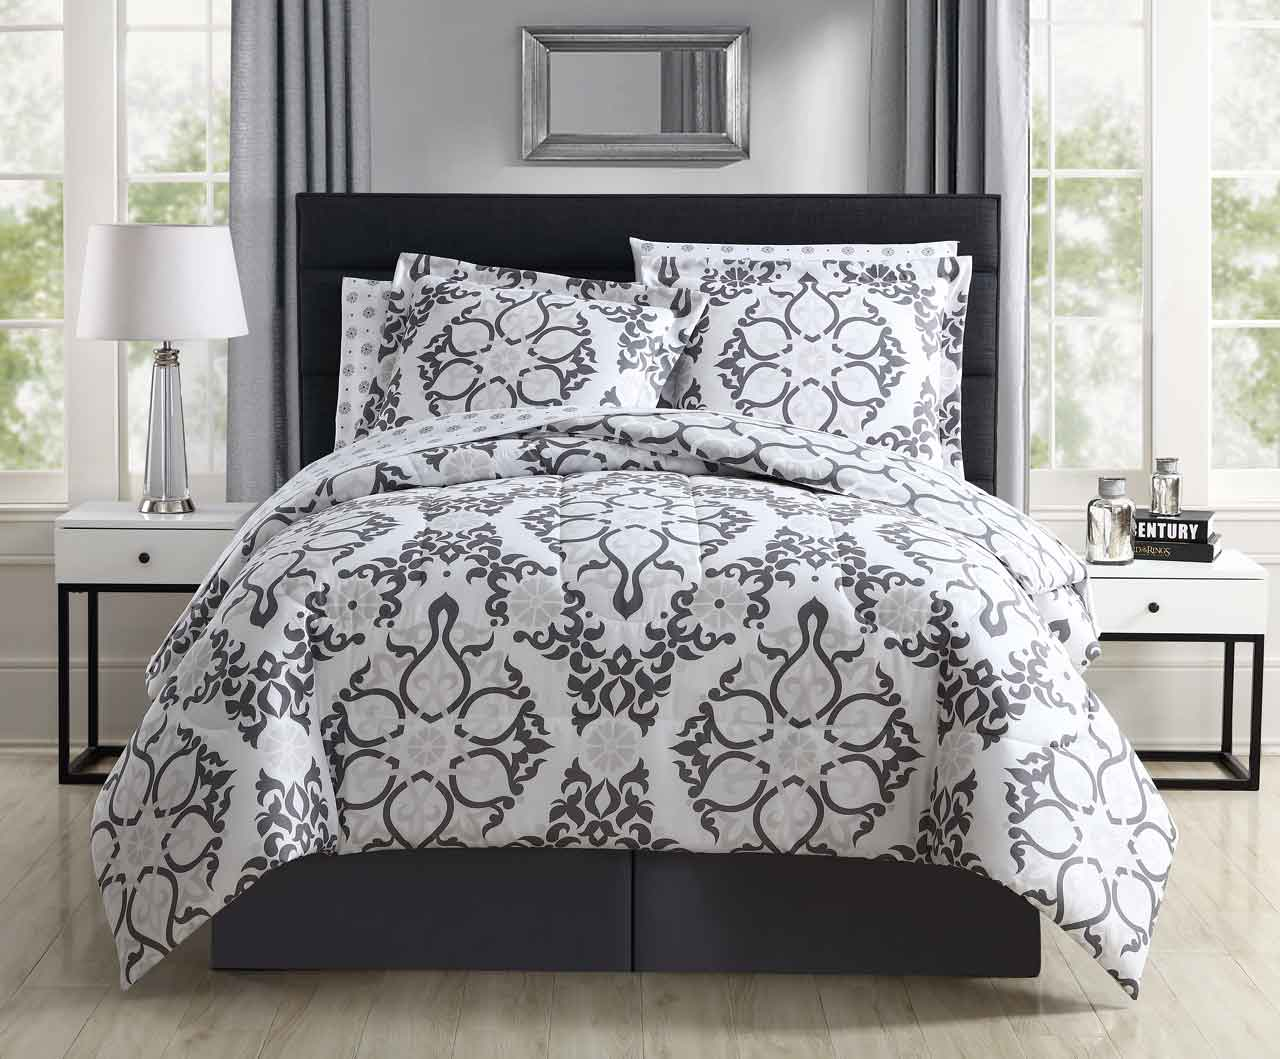 8 Piece Fillmore Taupe Comforter Set with Sheets